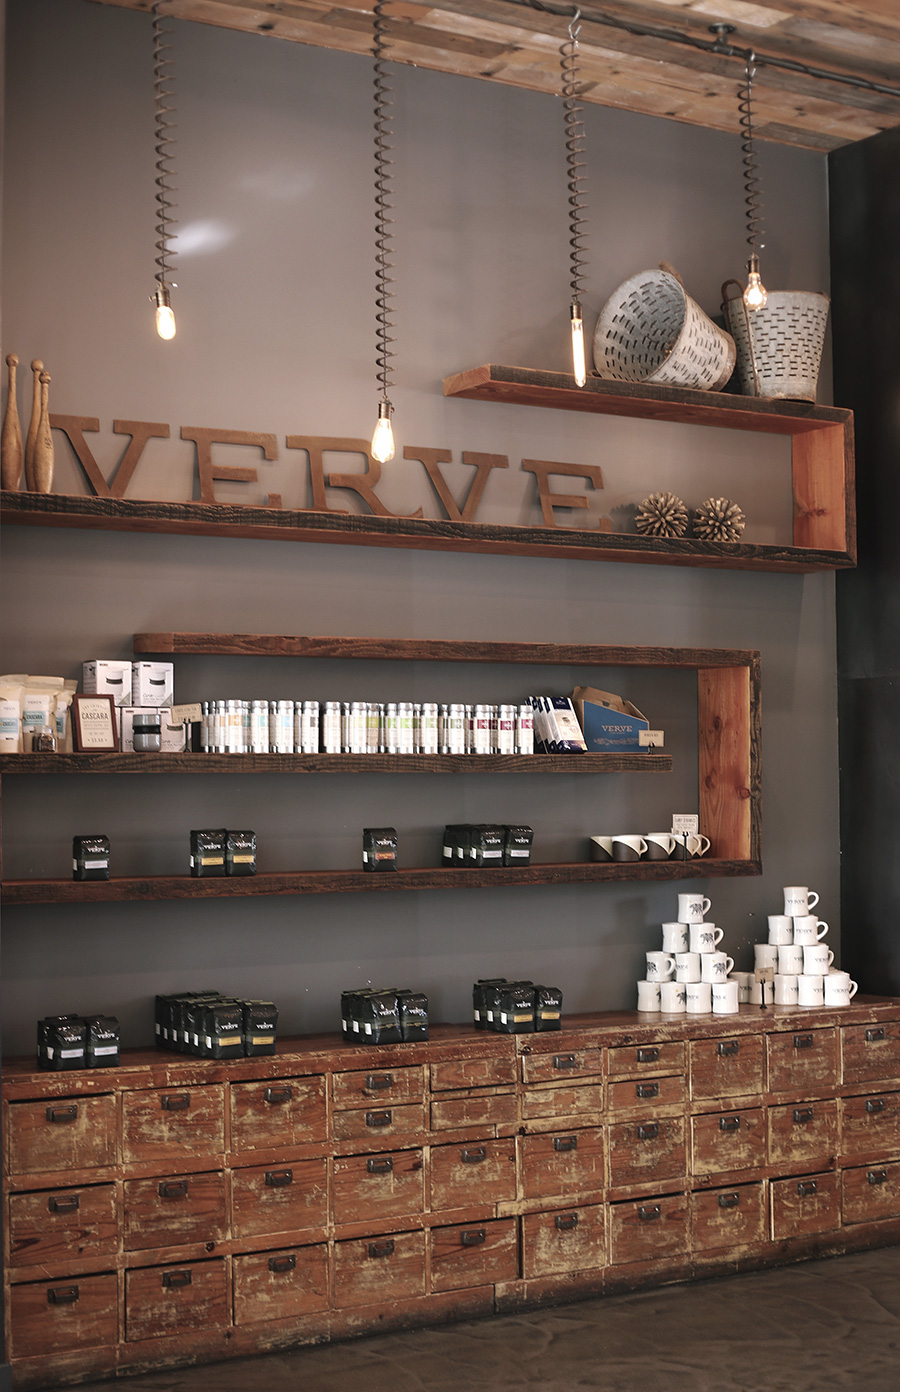 Verve Coffee Roasters Santa Cruz California